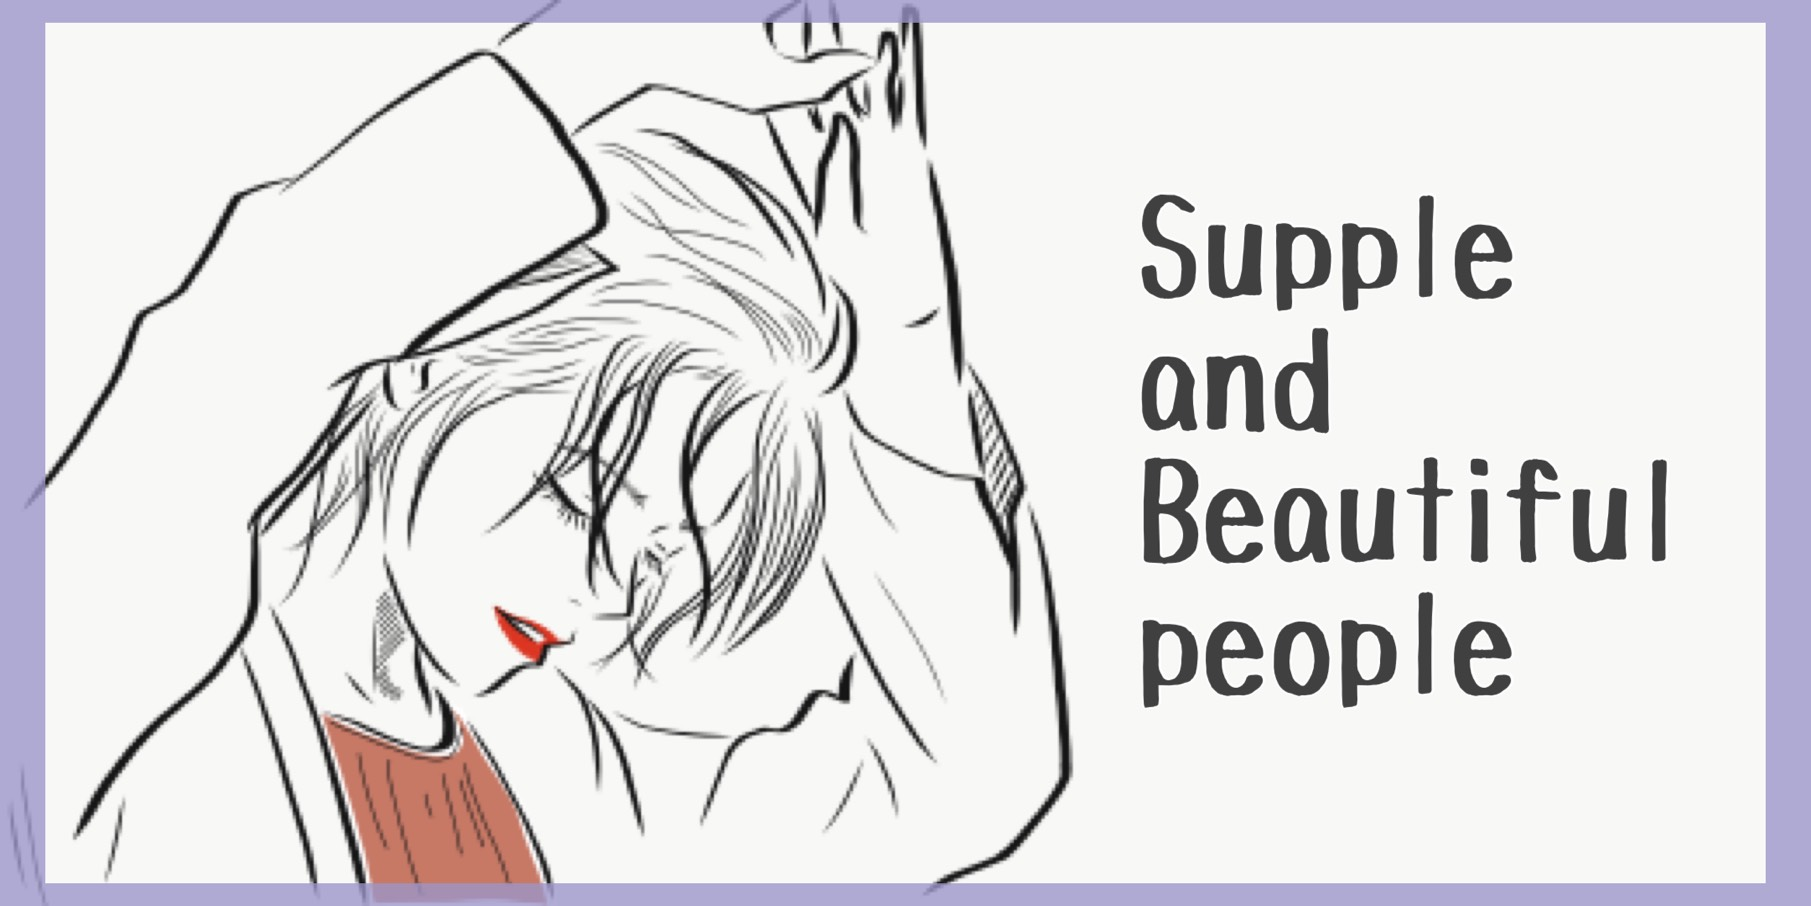 Supple and beautiful people